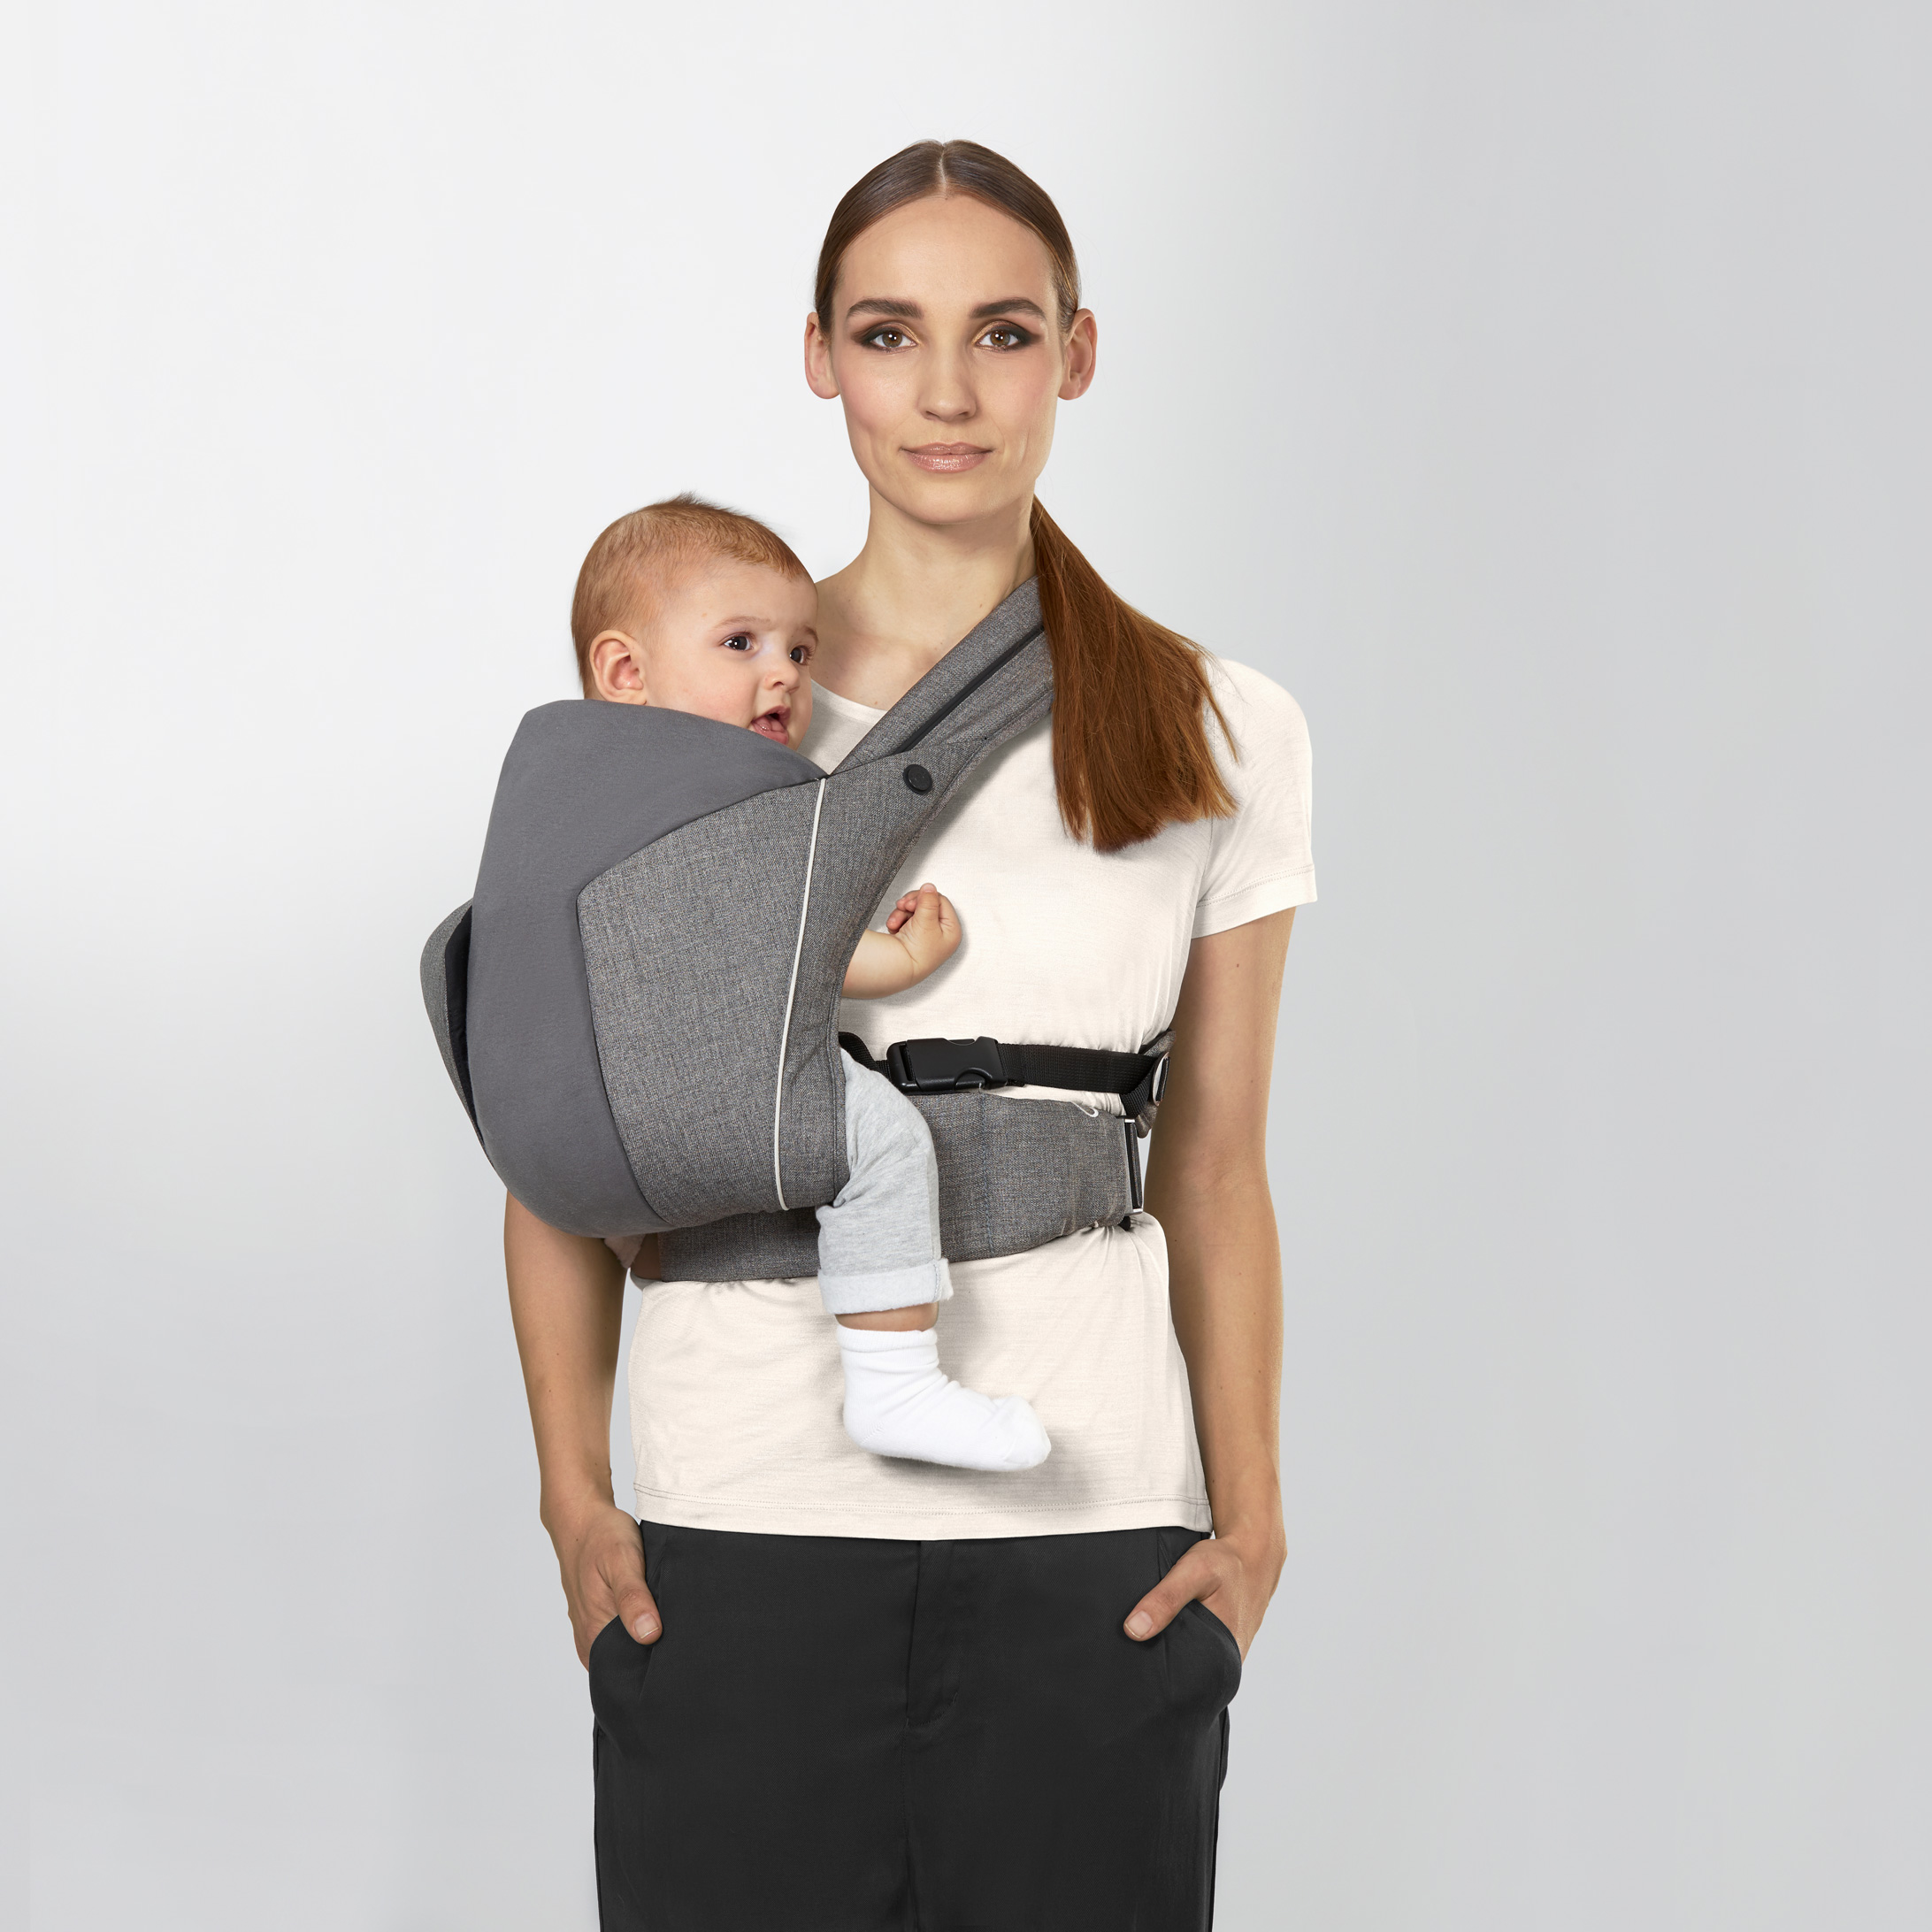 192b55a2b7d Babies that can hold their own head (from around 3-4 months) can also be  carried in the side position. This allows them to rest against mum s  shoulder while ...